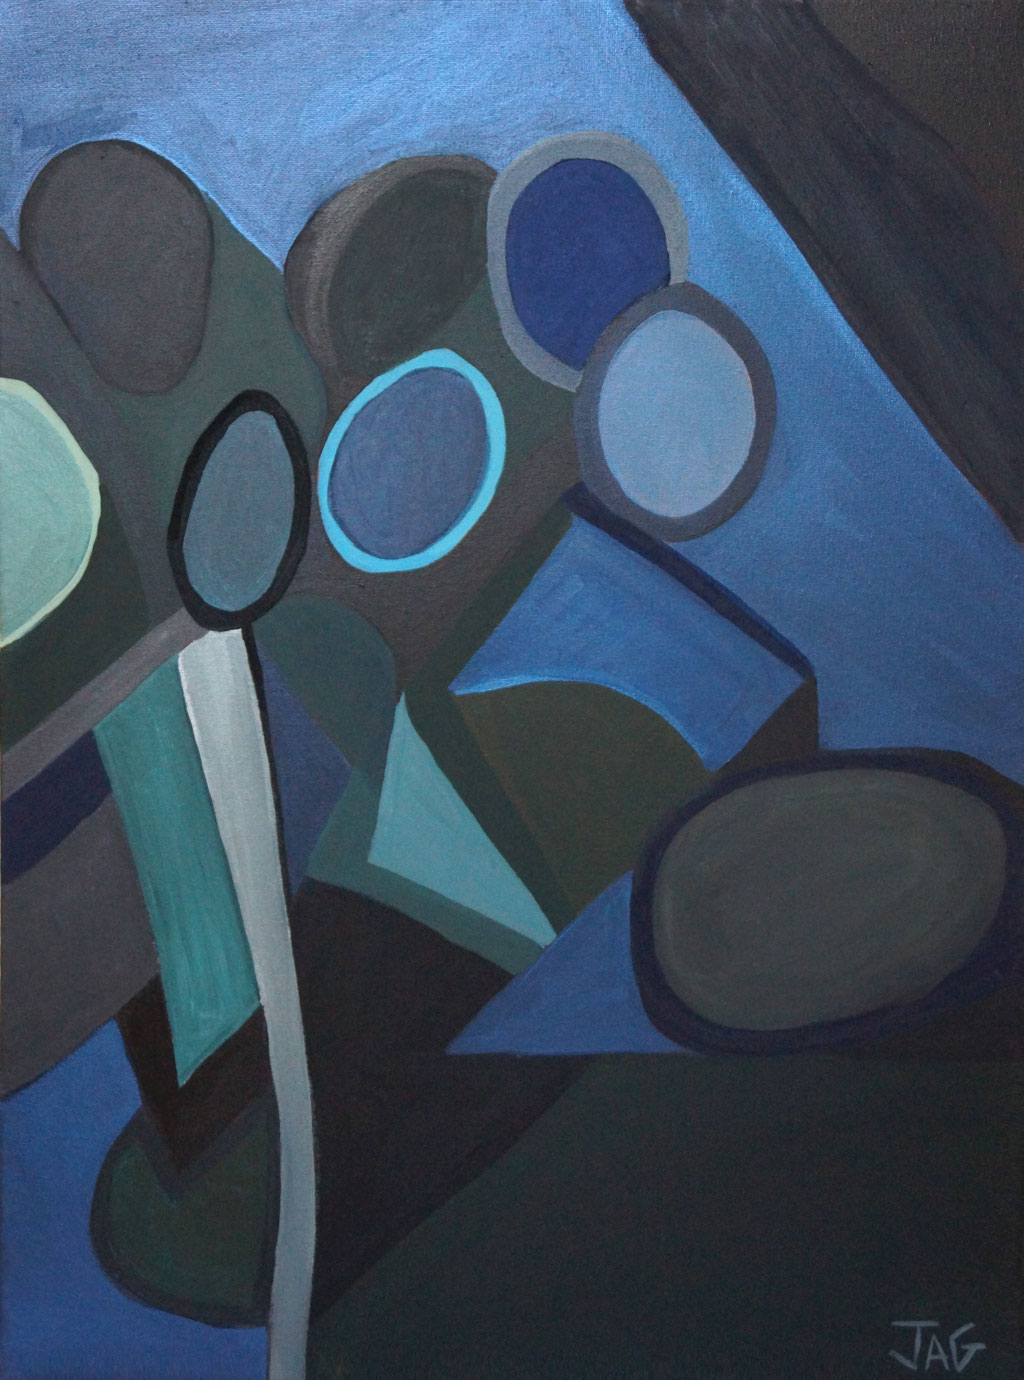 'Into the night' acrylic on canvas, 45 x 61cm, 2020 - price on request